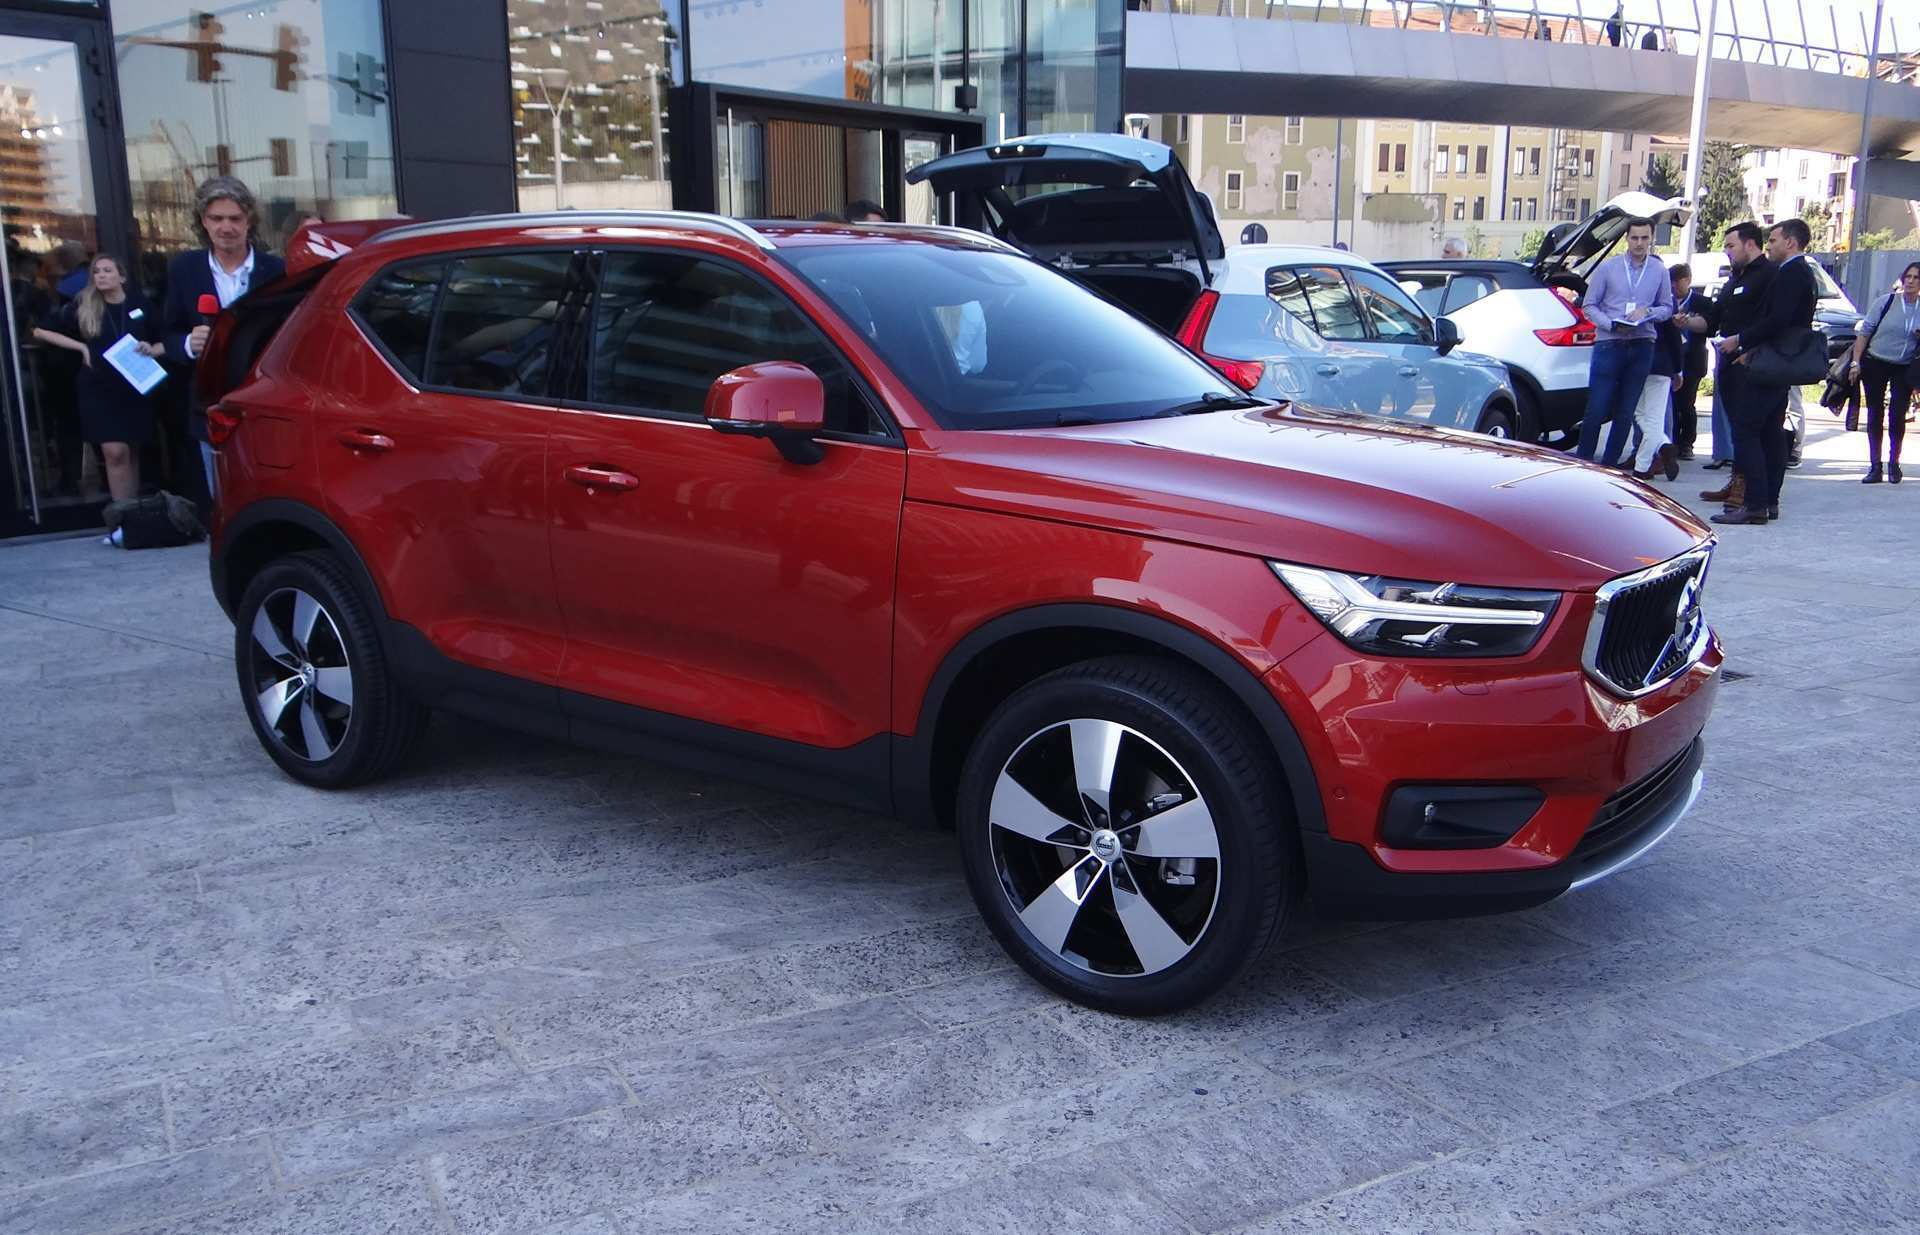 70 Gallery of Volvo Xc40 2020 New Concept Interior for Volvo Xc40 2020 New Concept